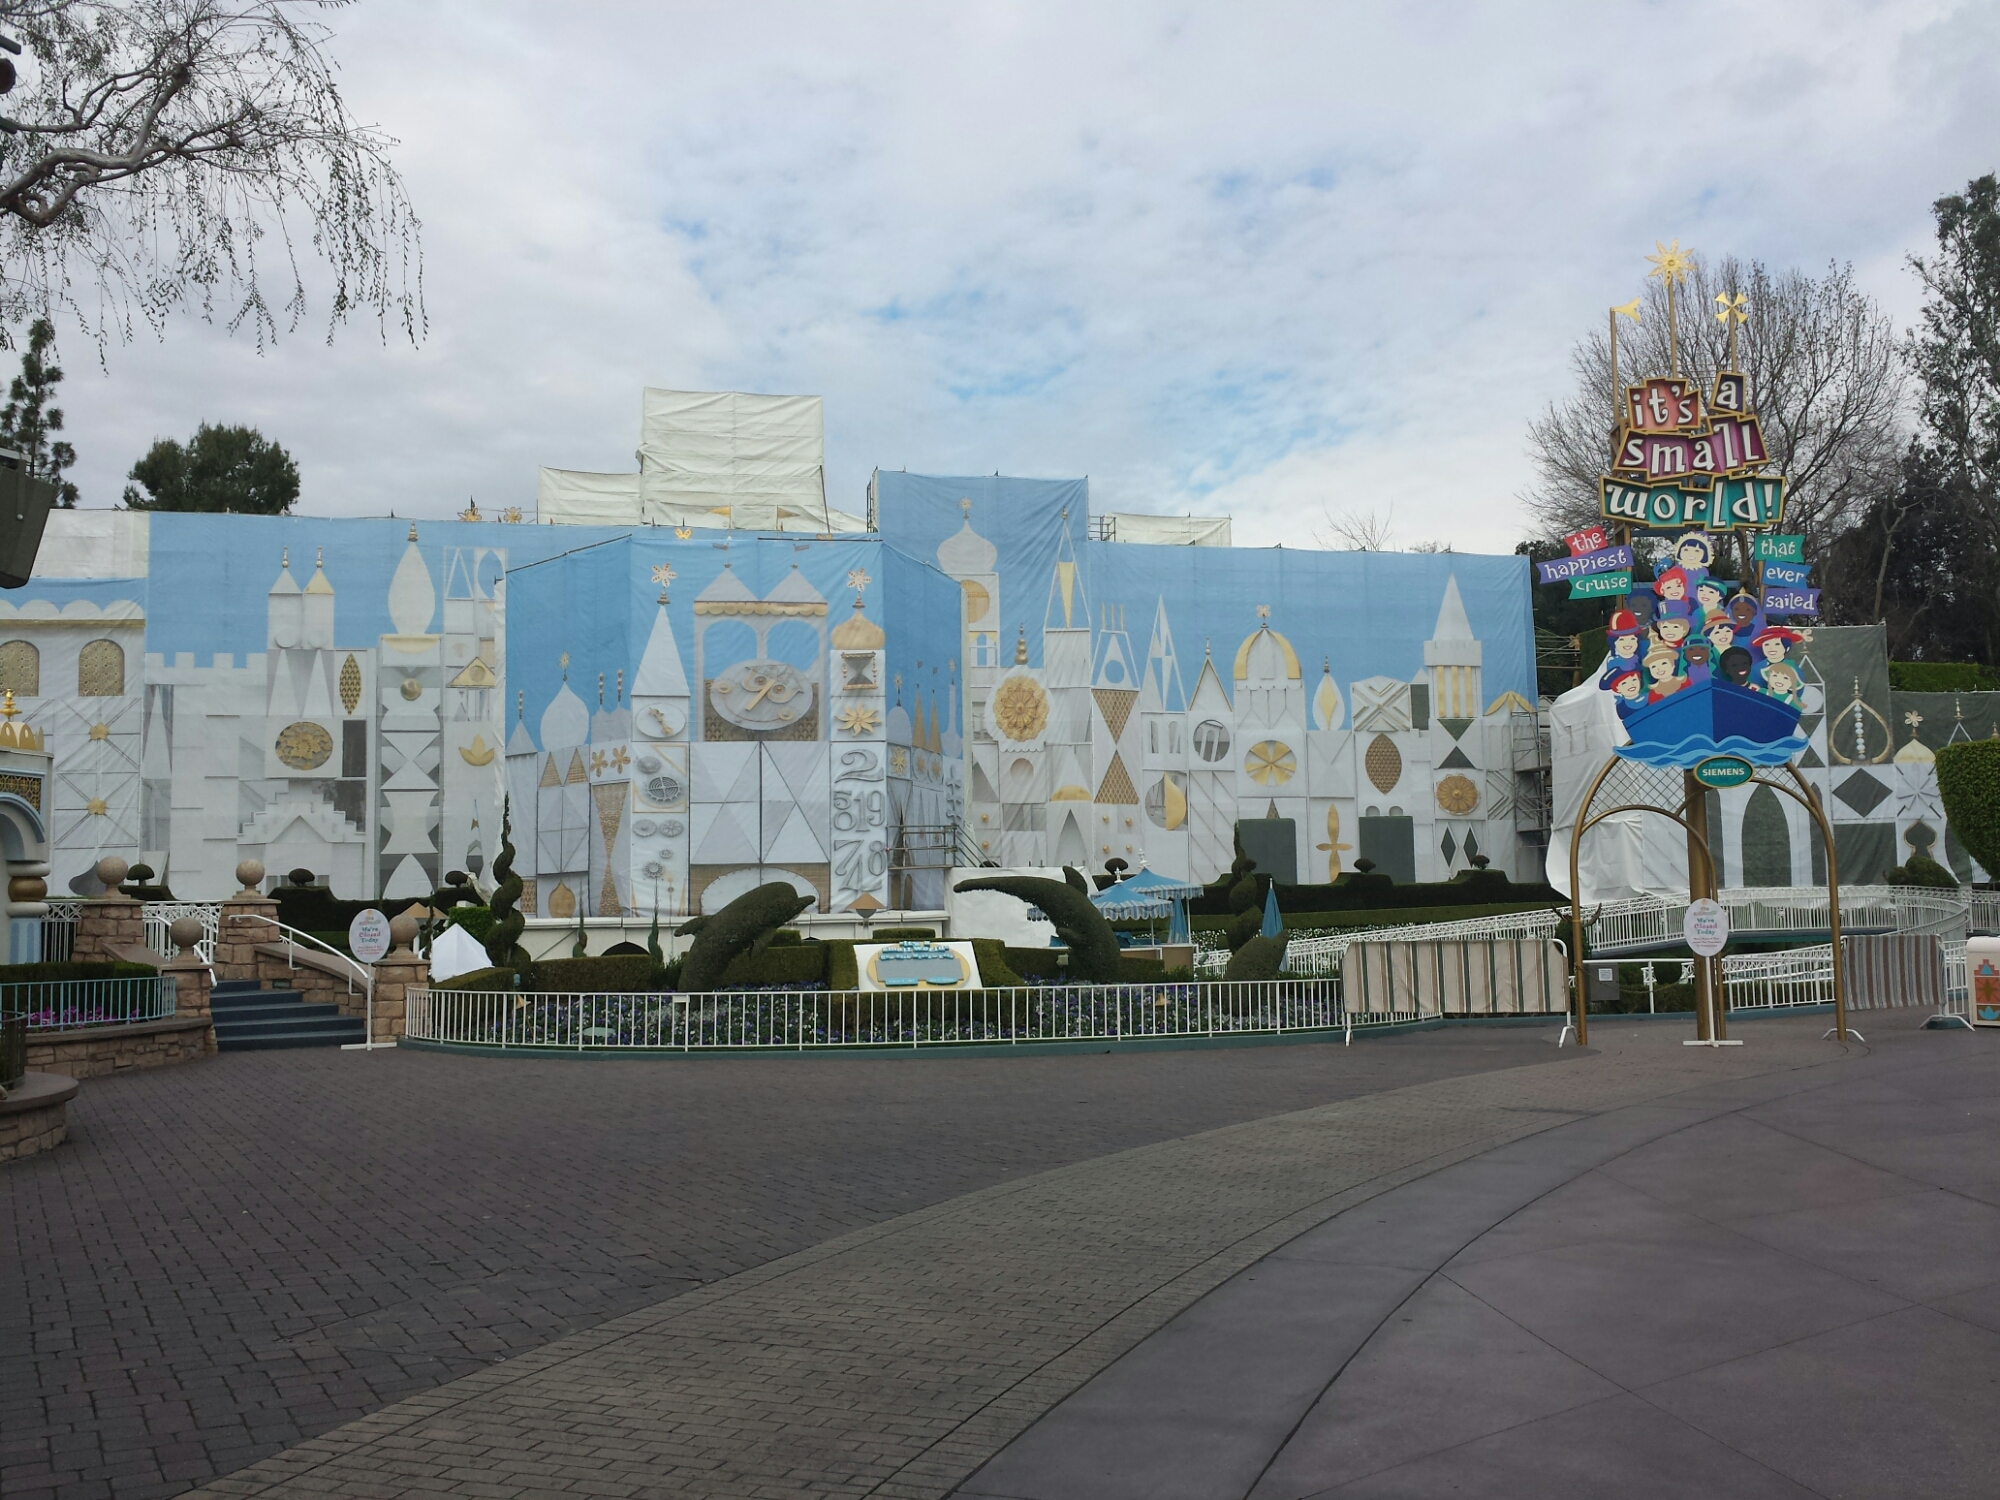 It S A Small World Is Closed For The Removal Of The